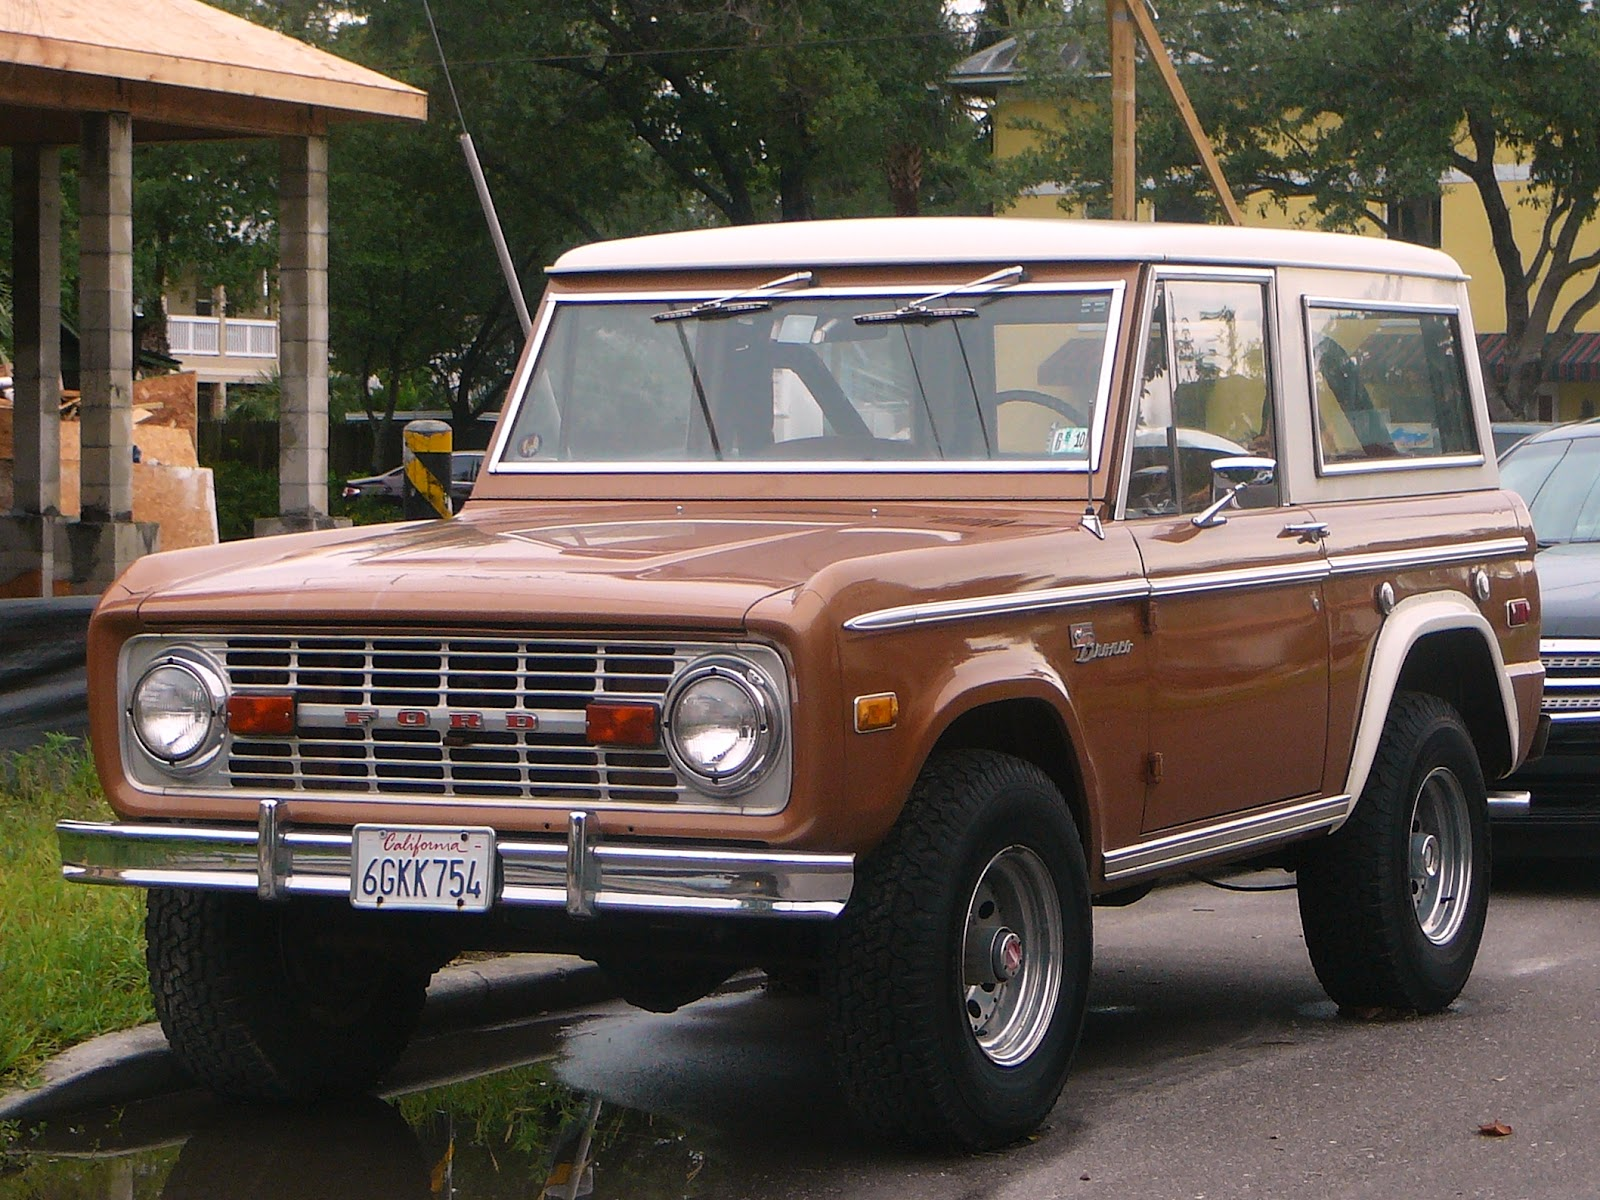 tampa florida photo over 40 and not aging 1970s ford bronco. Black Bedroom Furniture Sets. Home Design Ideas